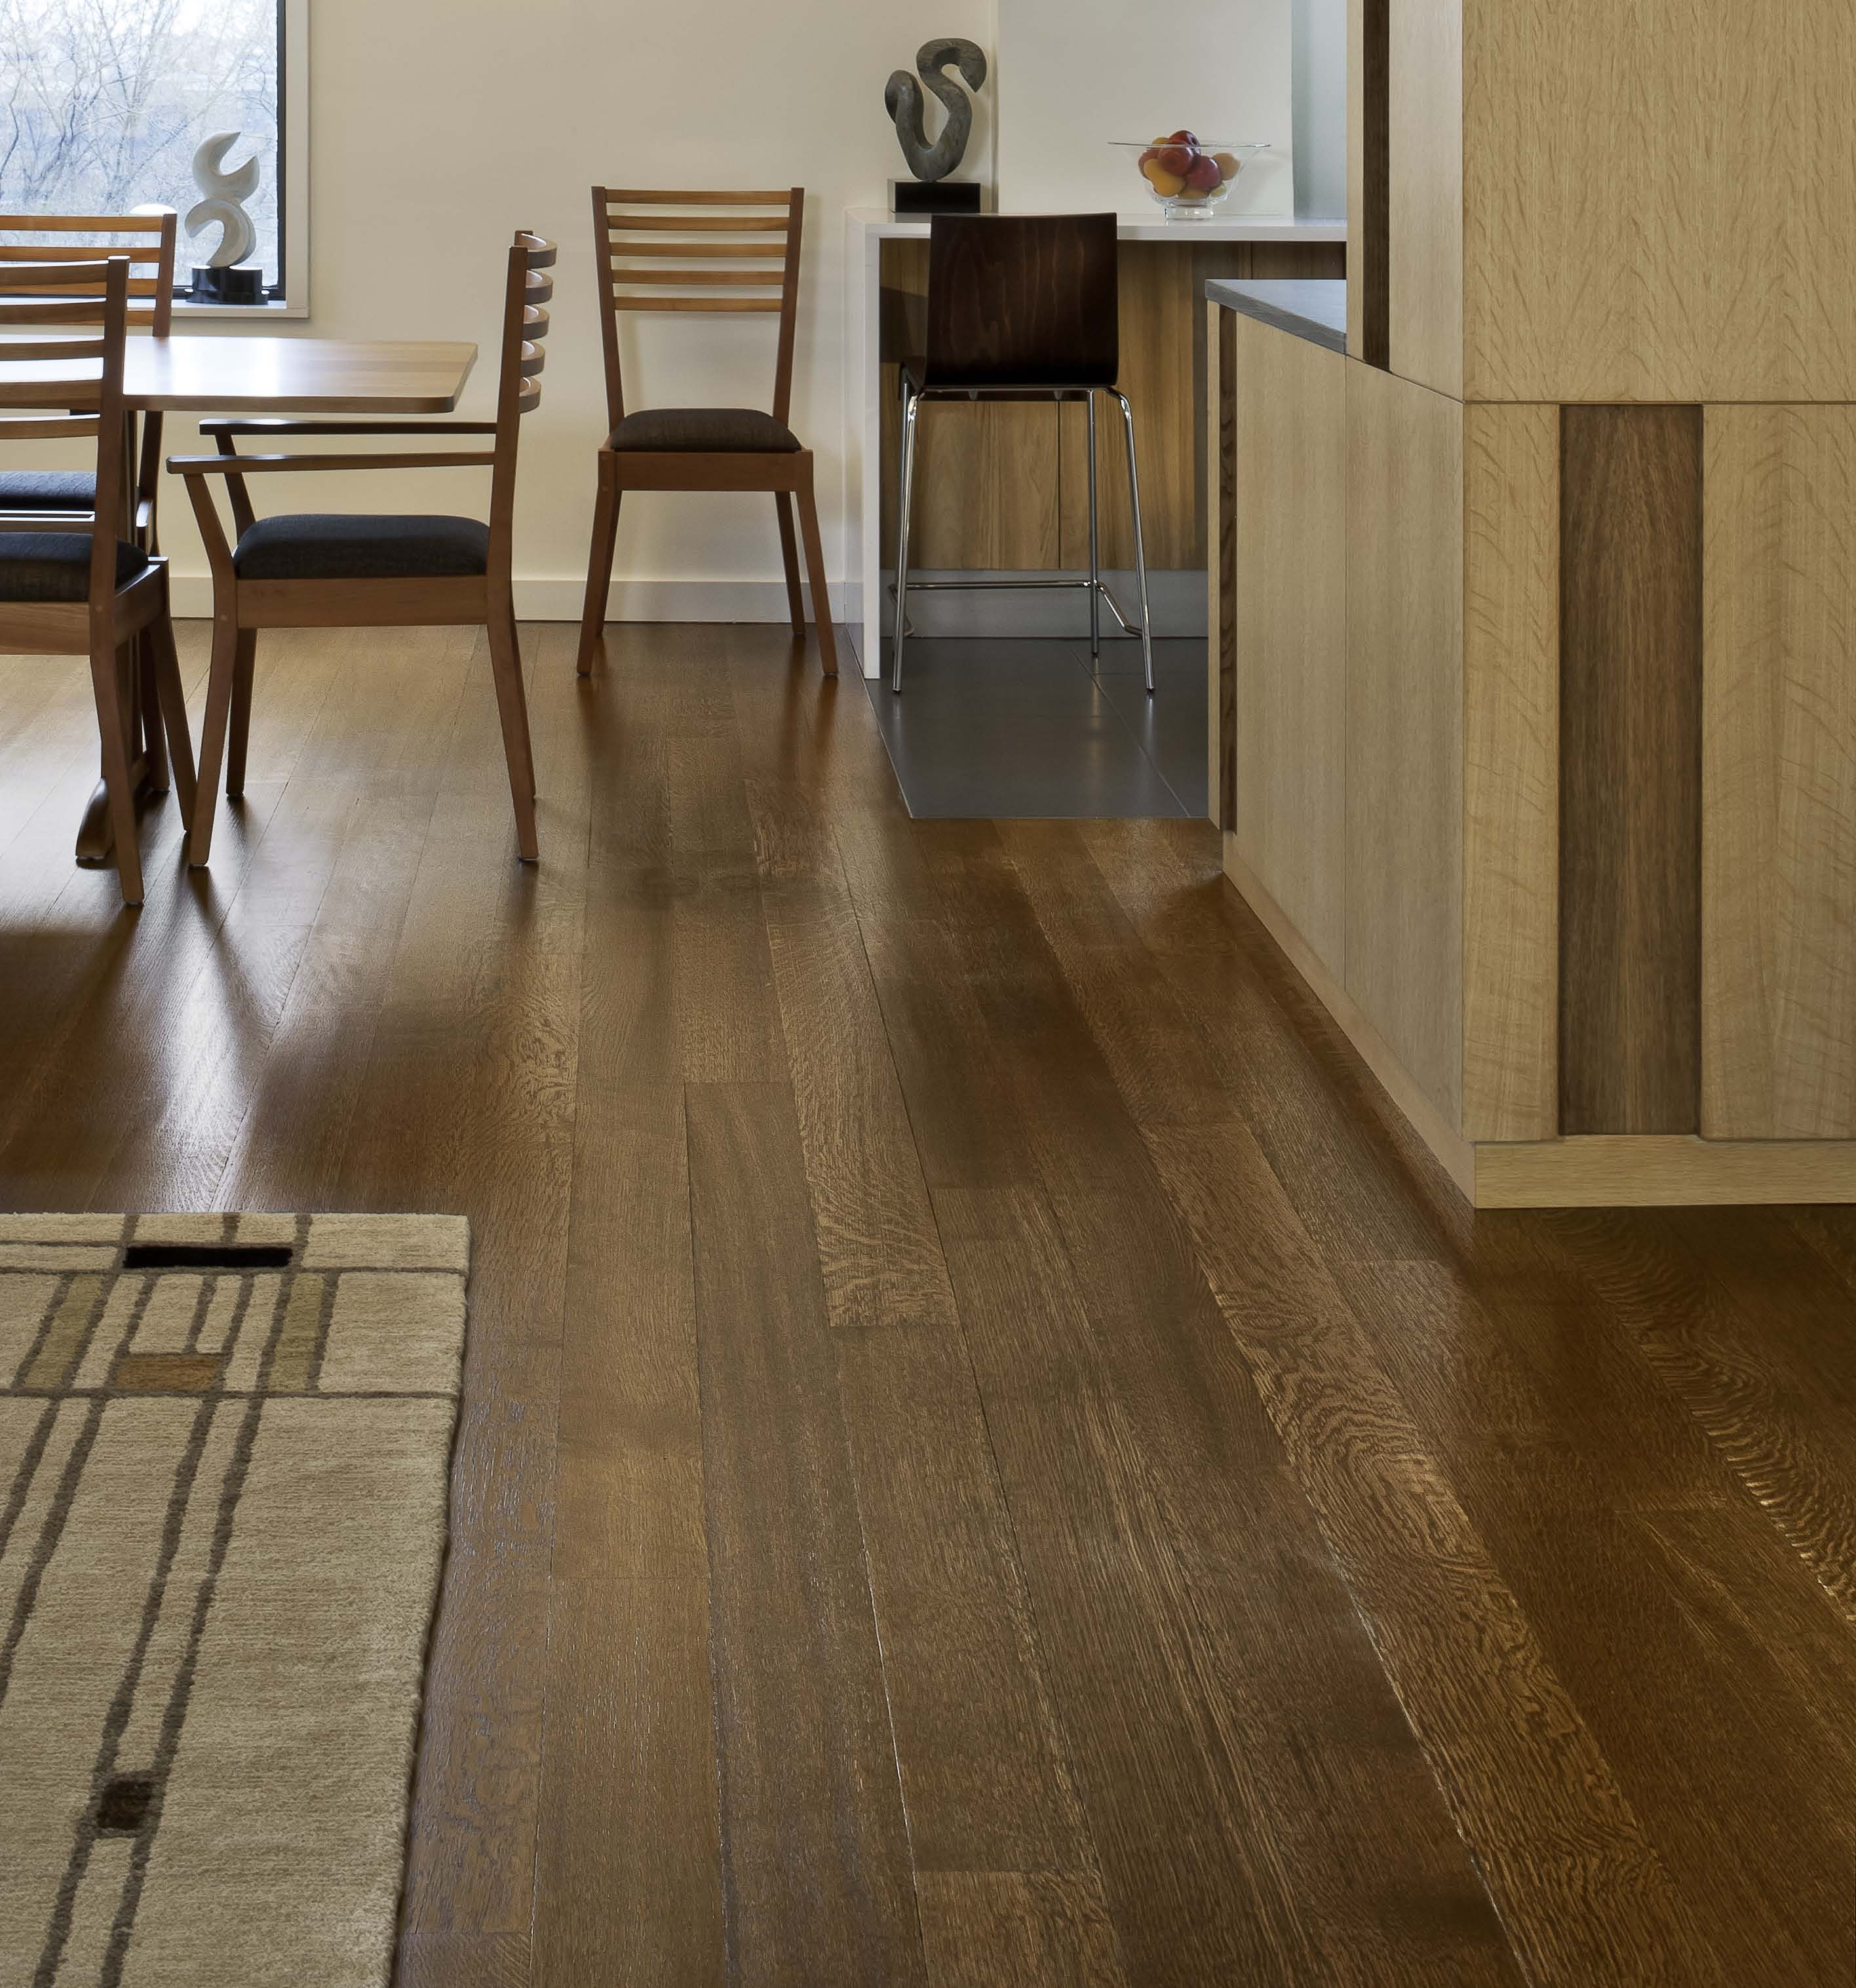 what type of hardwood floor do i have of forest accents wood floor unique engaging discount hardwood flooring throughout forest accents wood floor unique engaging discount hardwood flooring 5 where to buy inspirational 0d